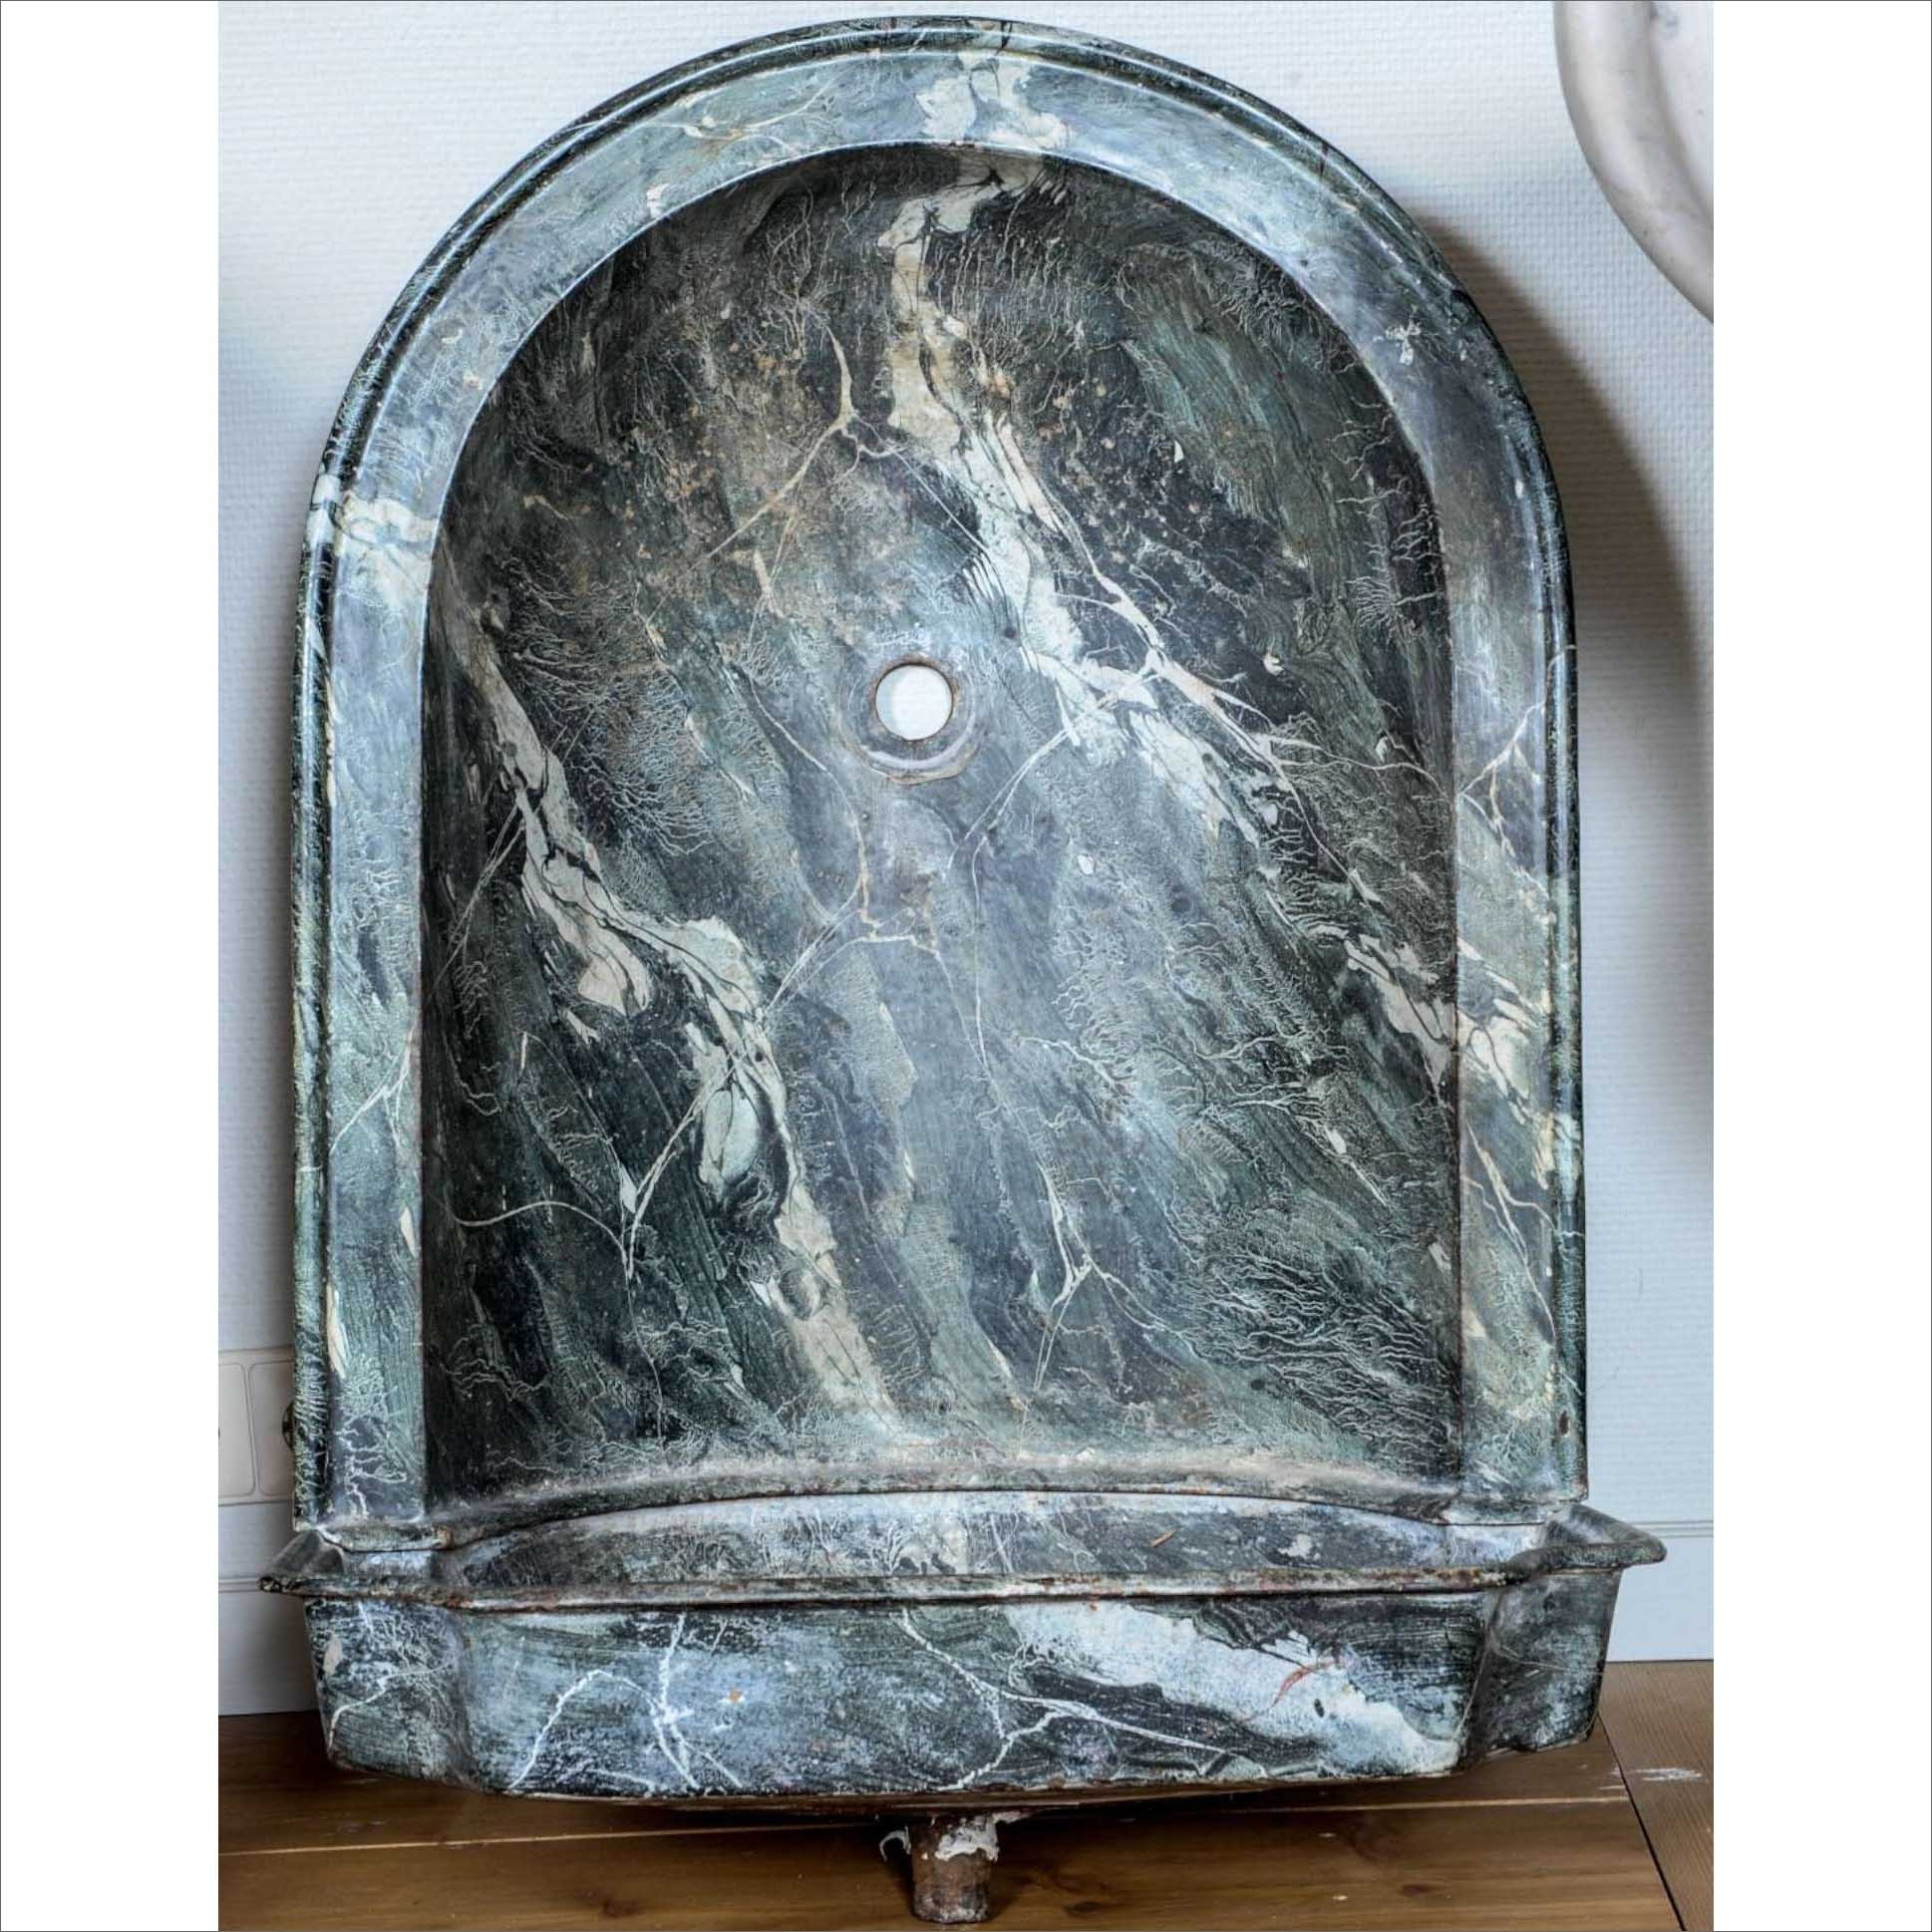 Large cast iron green marbleized (faux marble) wash basin